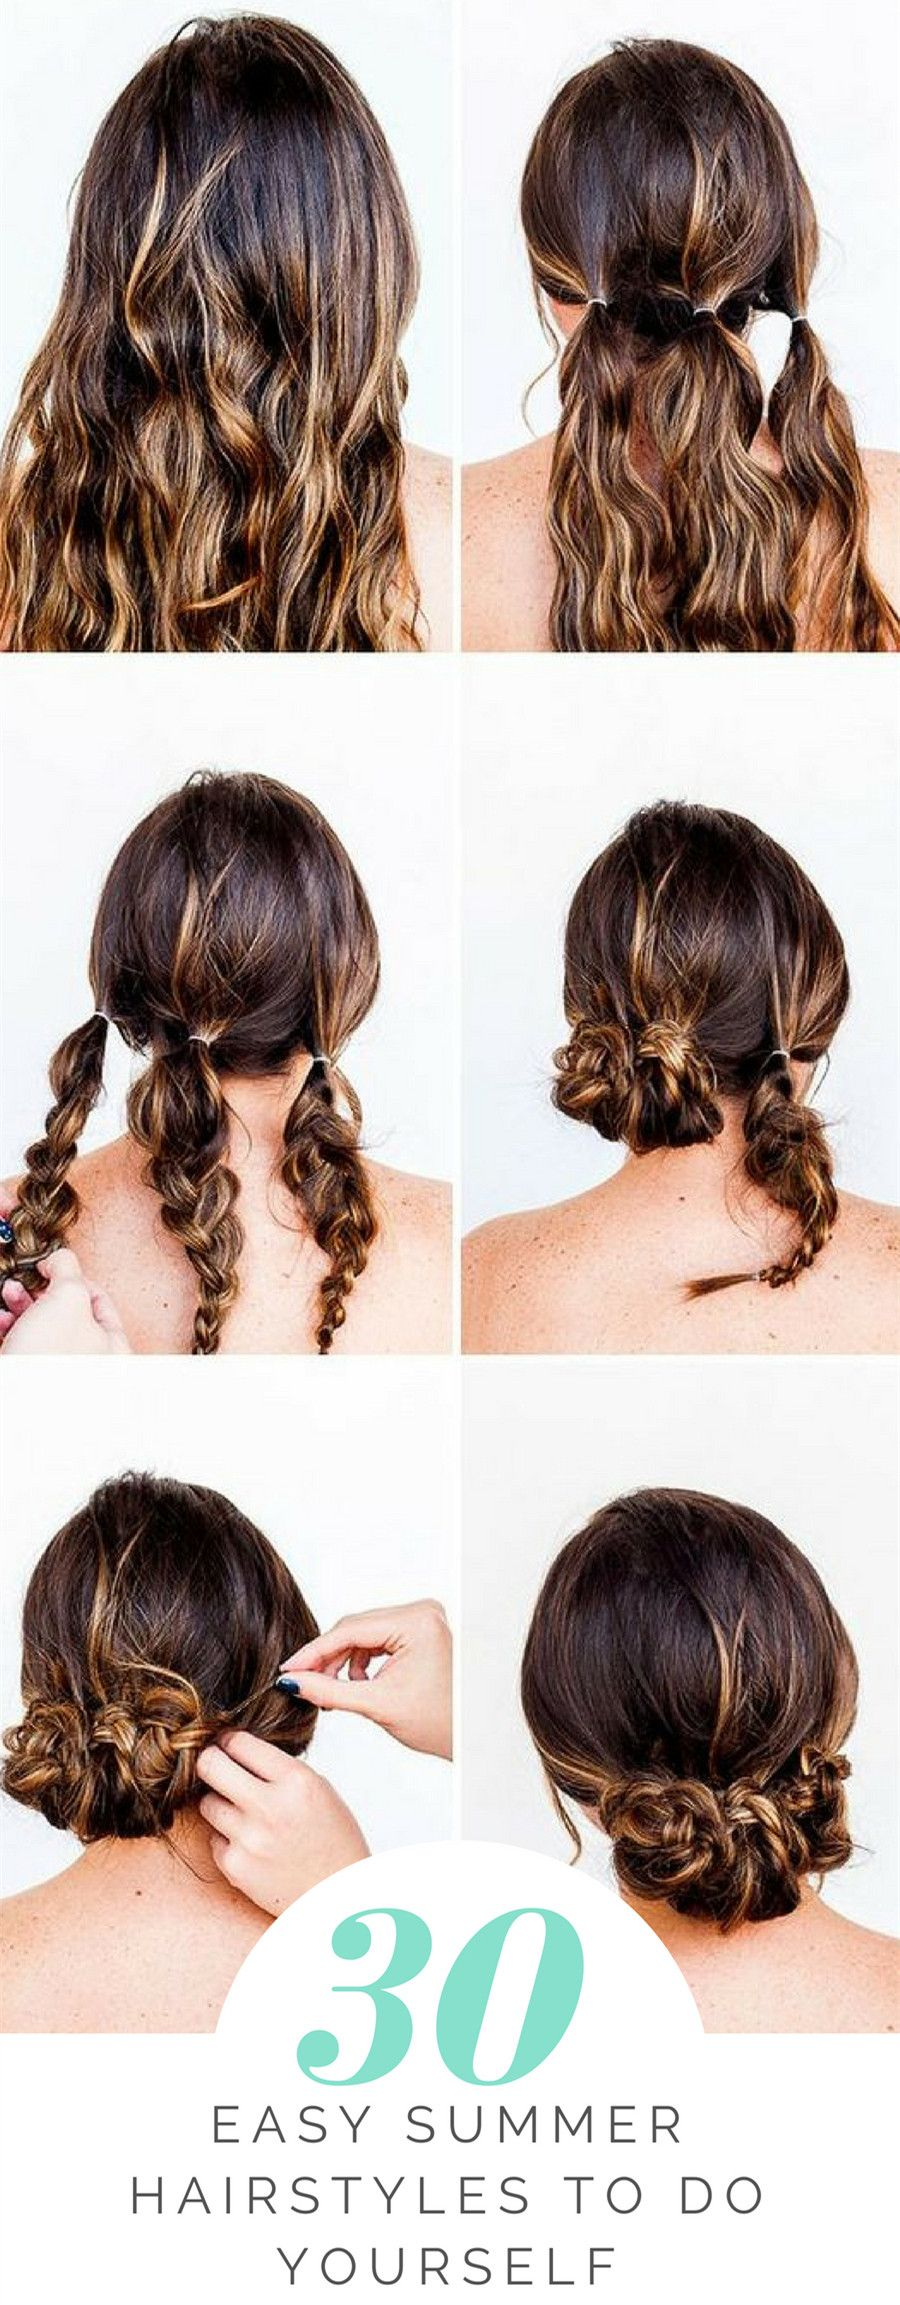 easy summer hairstyles to do yourself hair hair and more hair